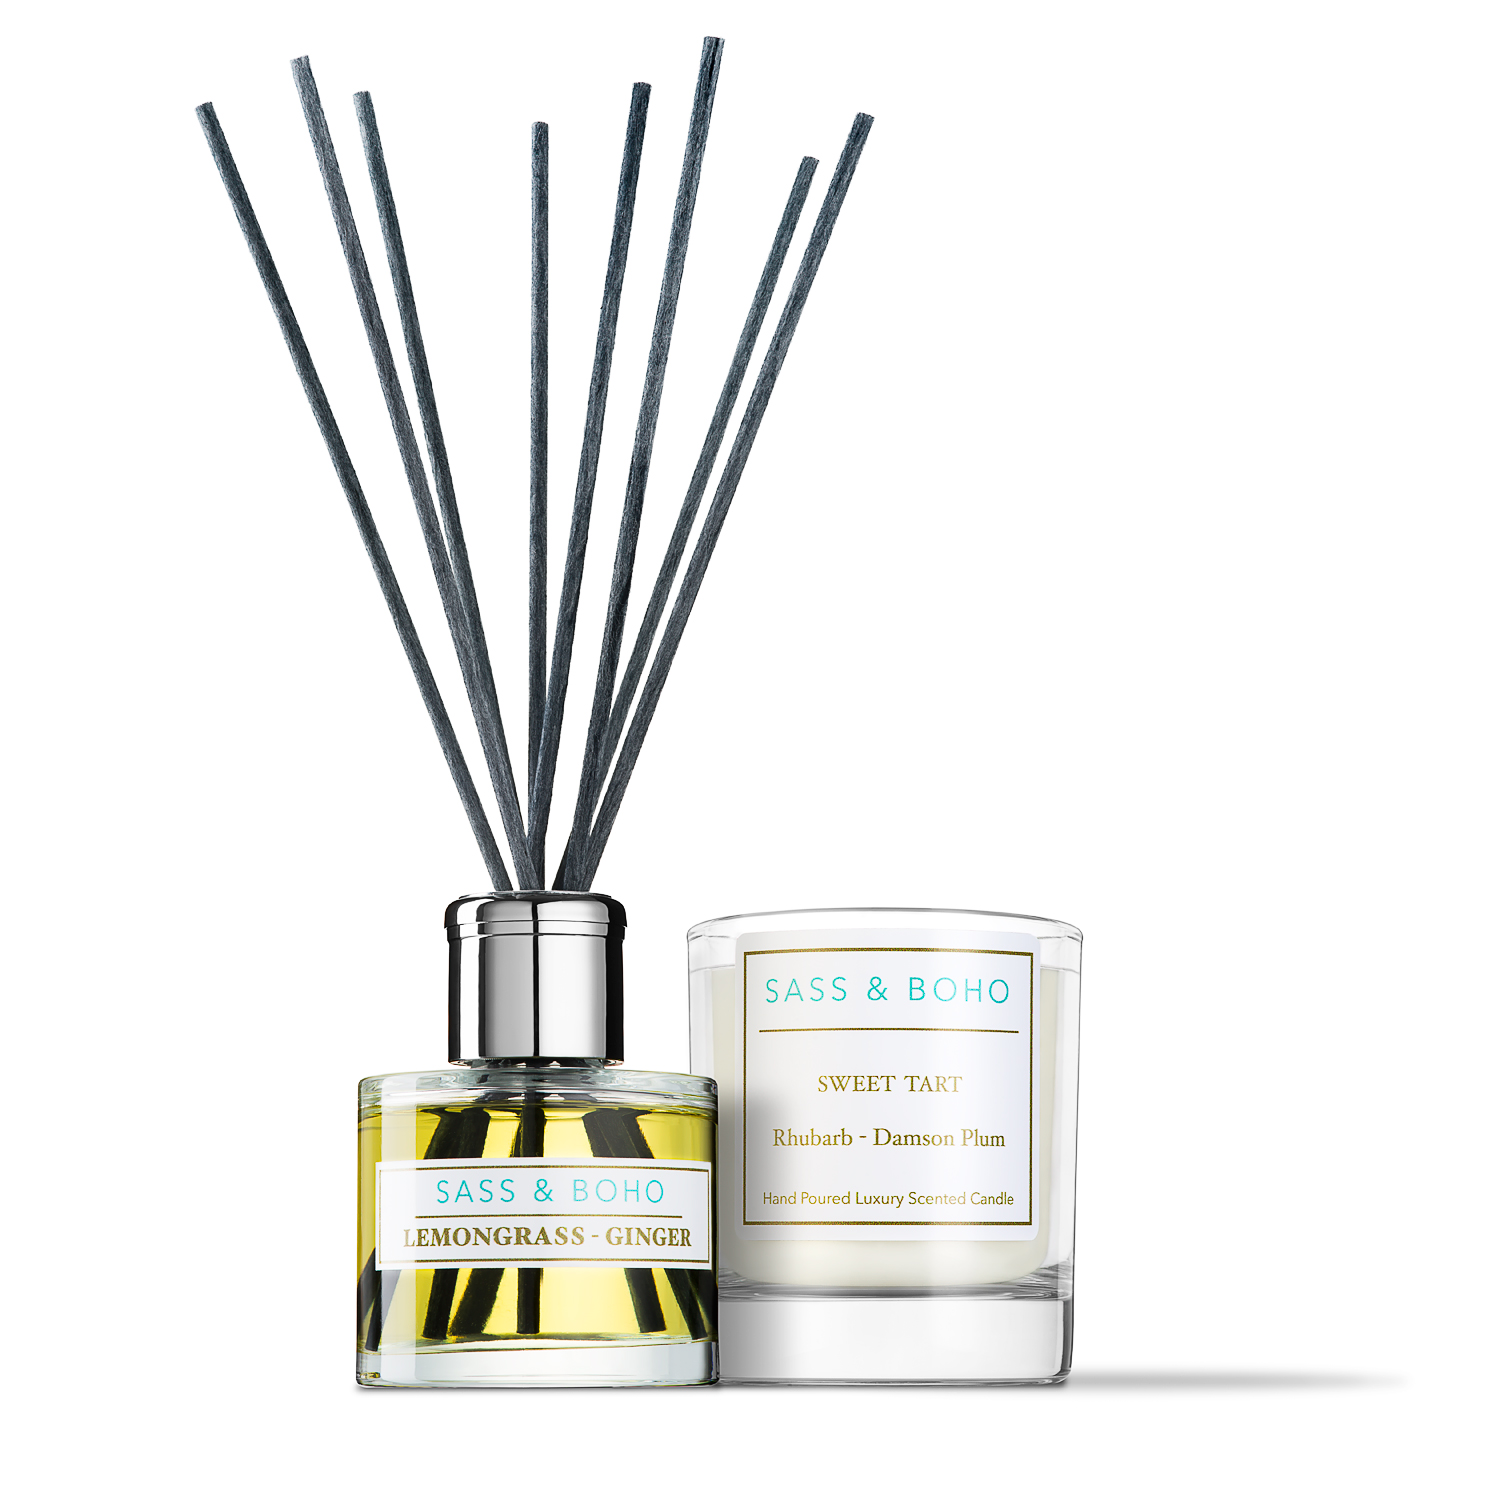 Candle & Reed Diffuser